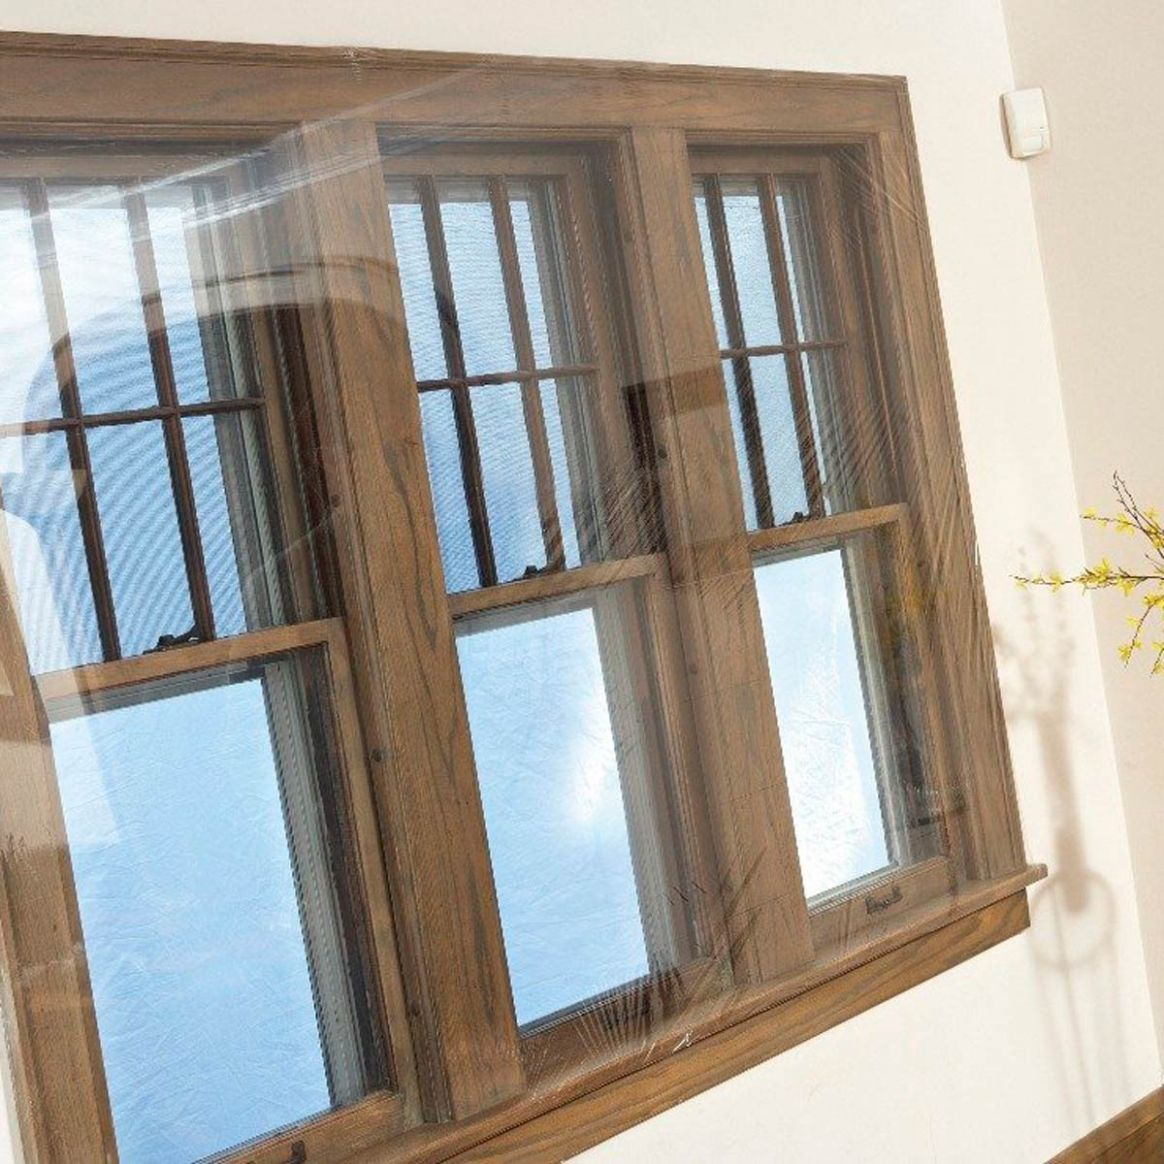 Does Putting Plastic Over Your Windows Really Save Energy? - window insulation ideas